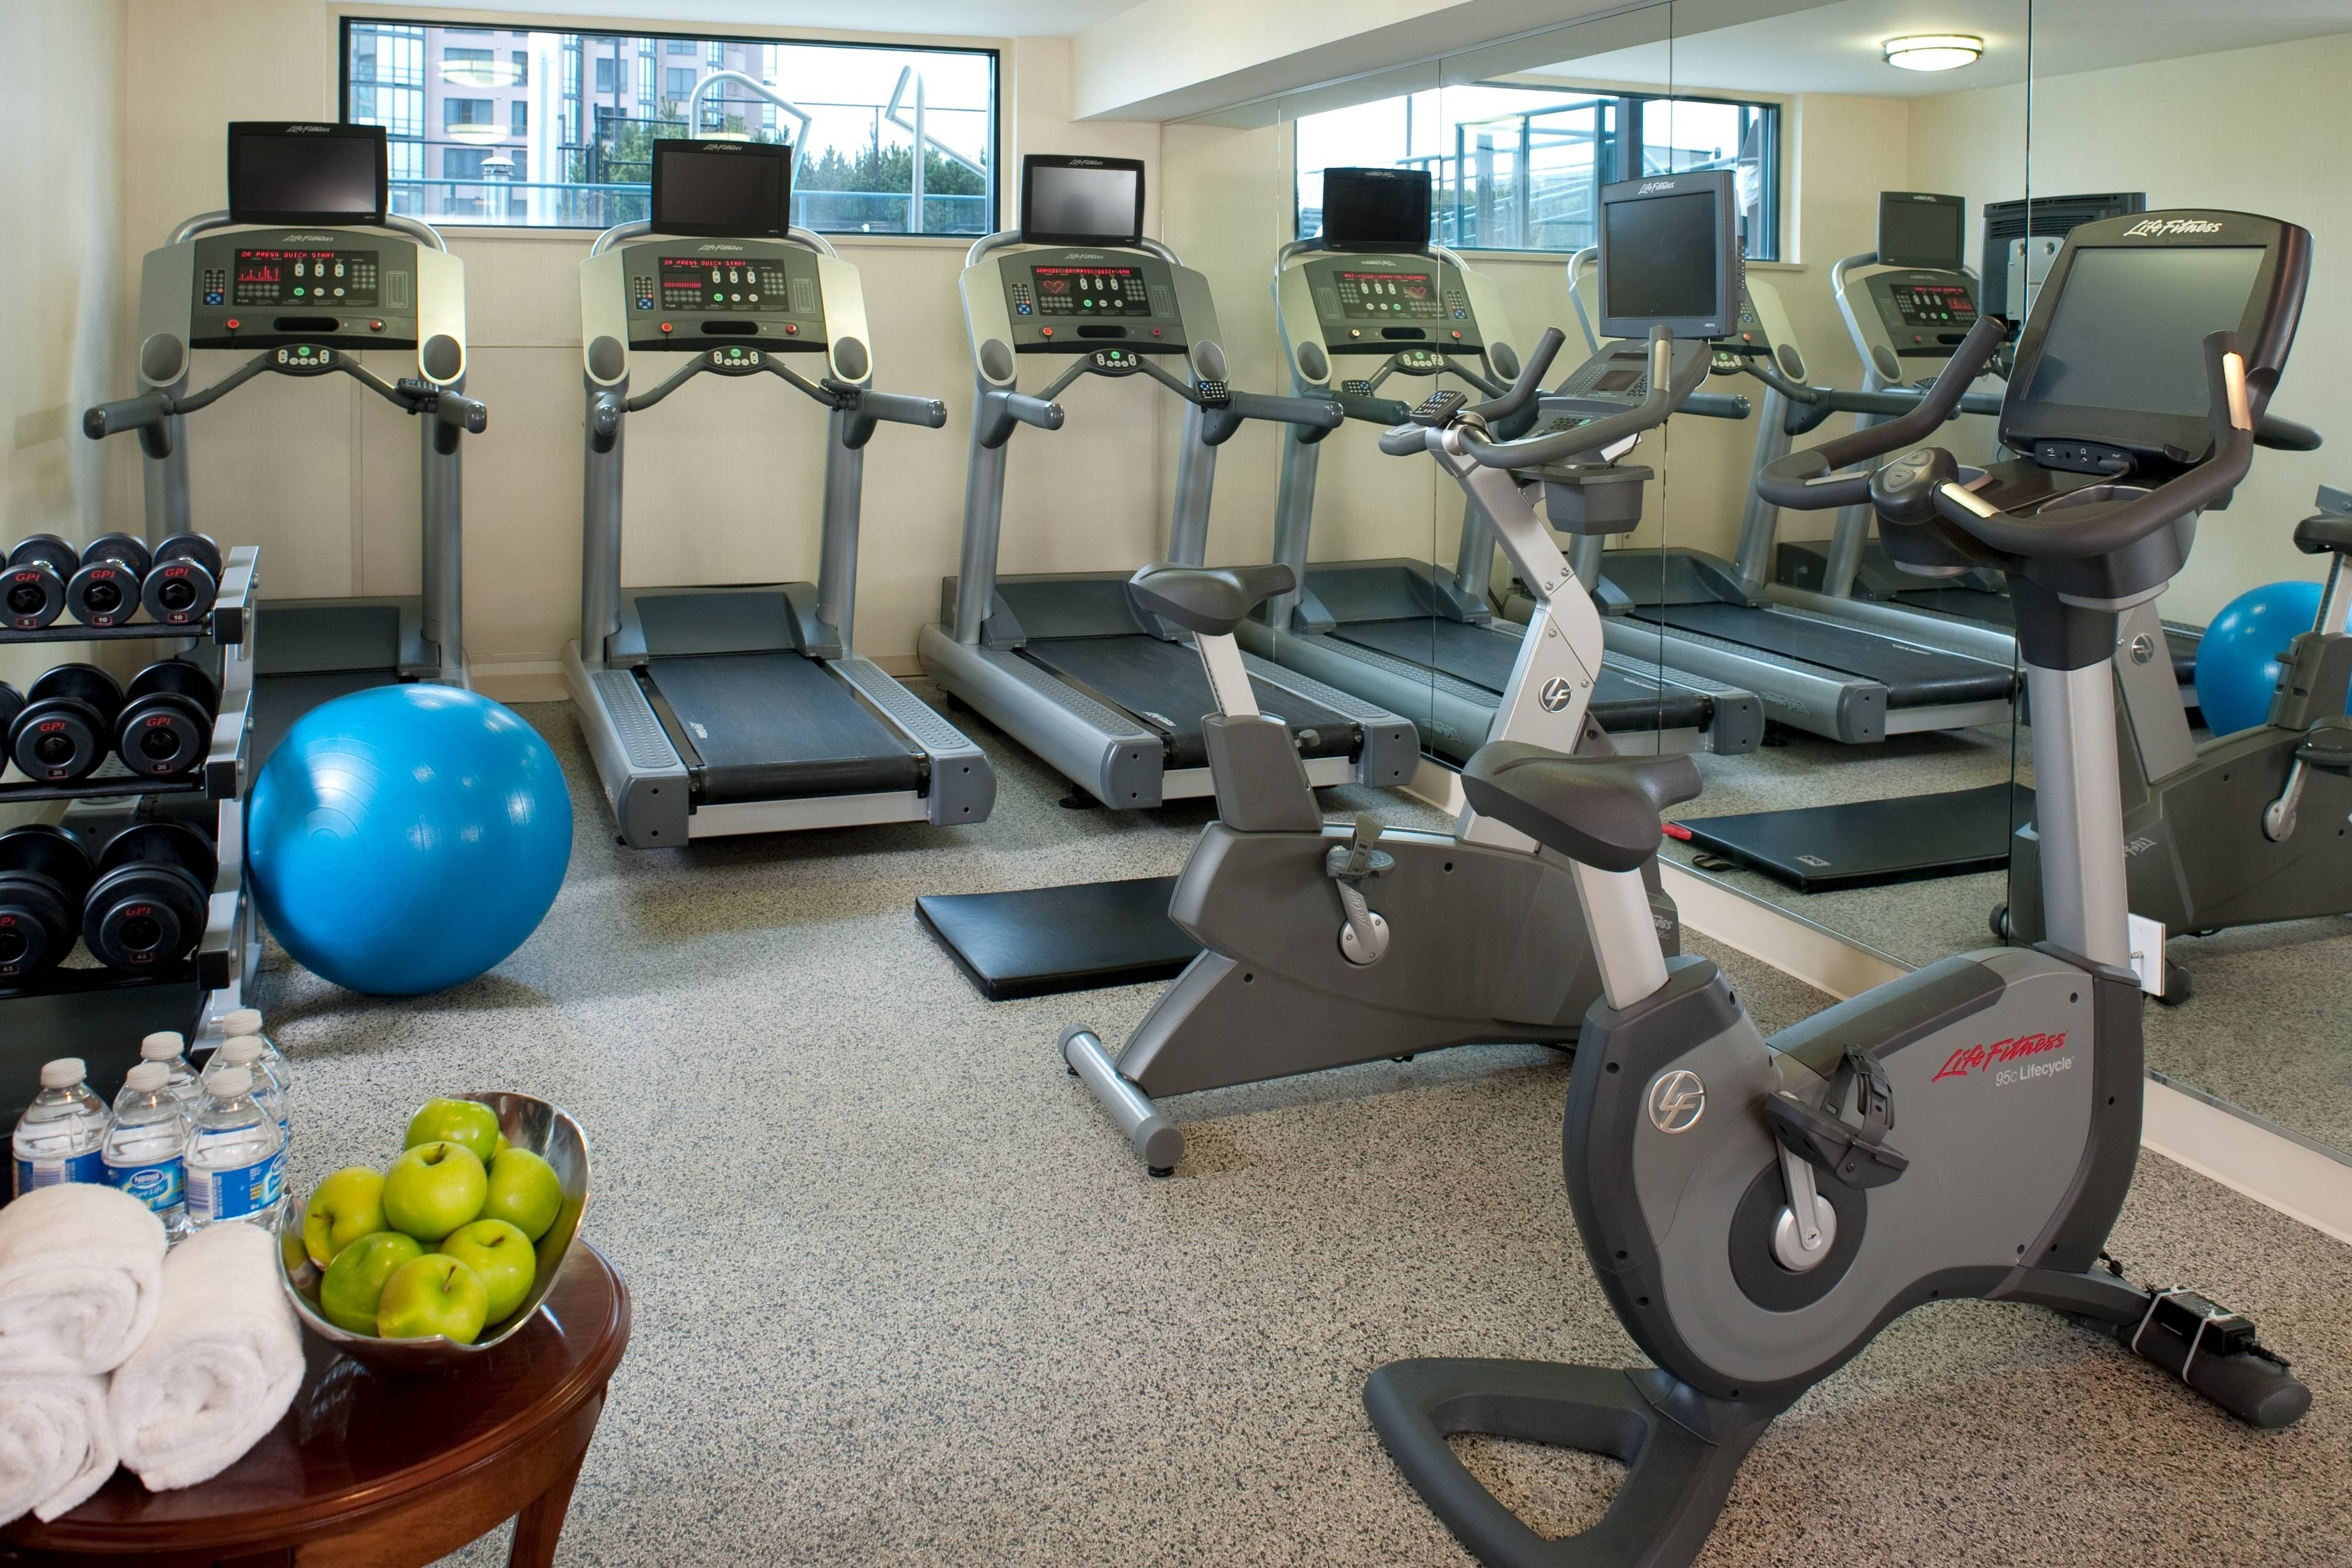 Vancouver airport hotel with gym